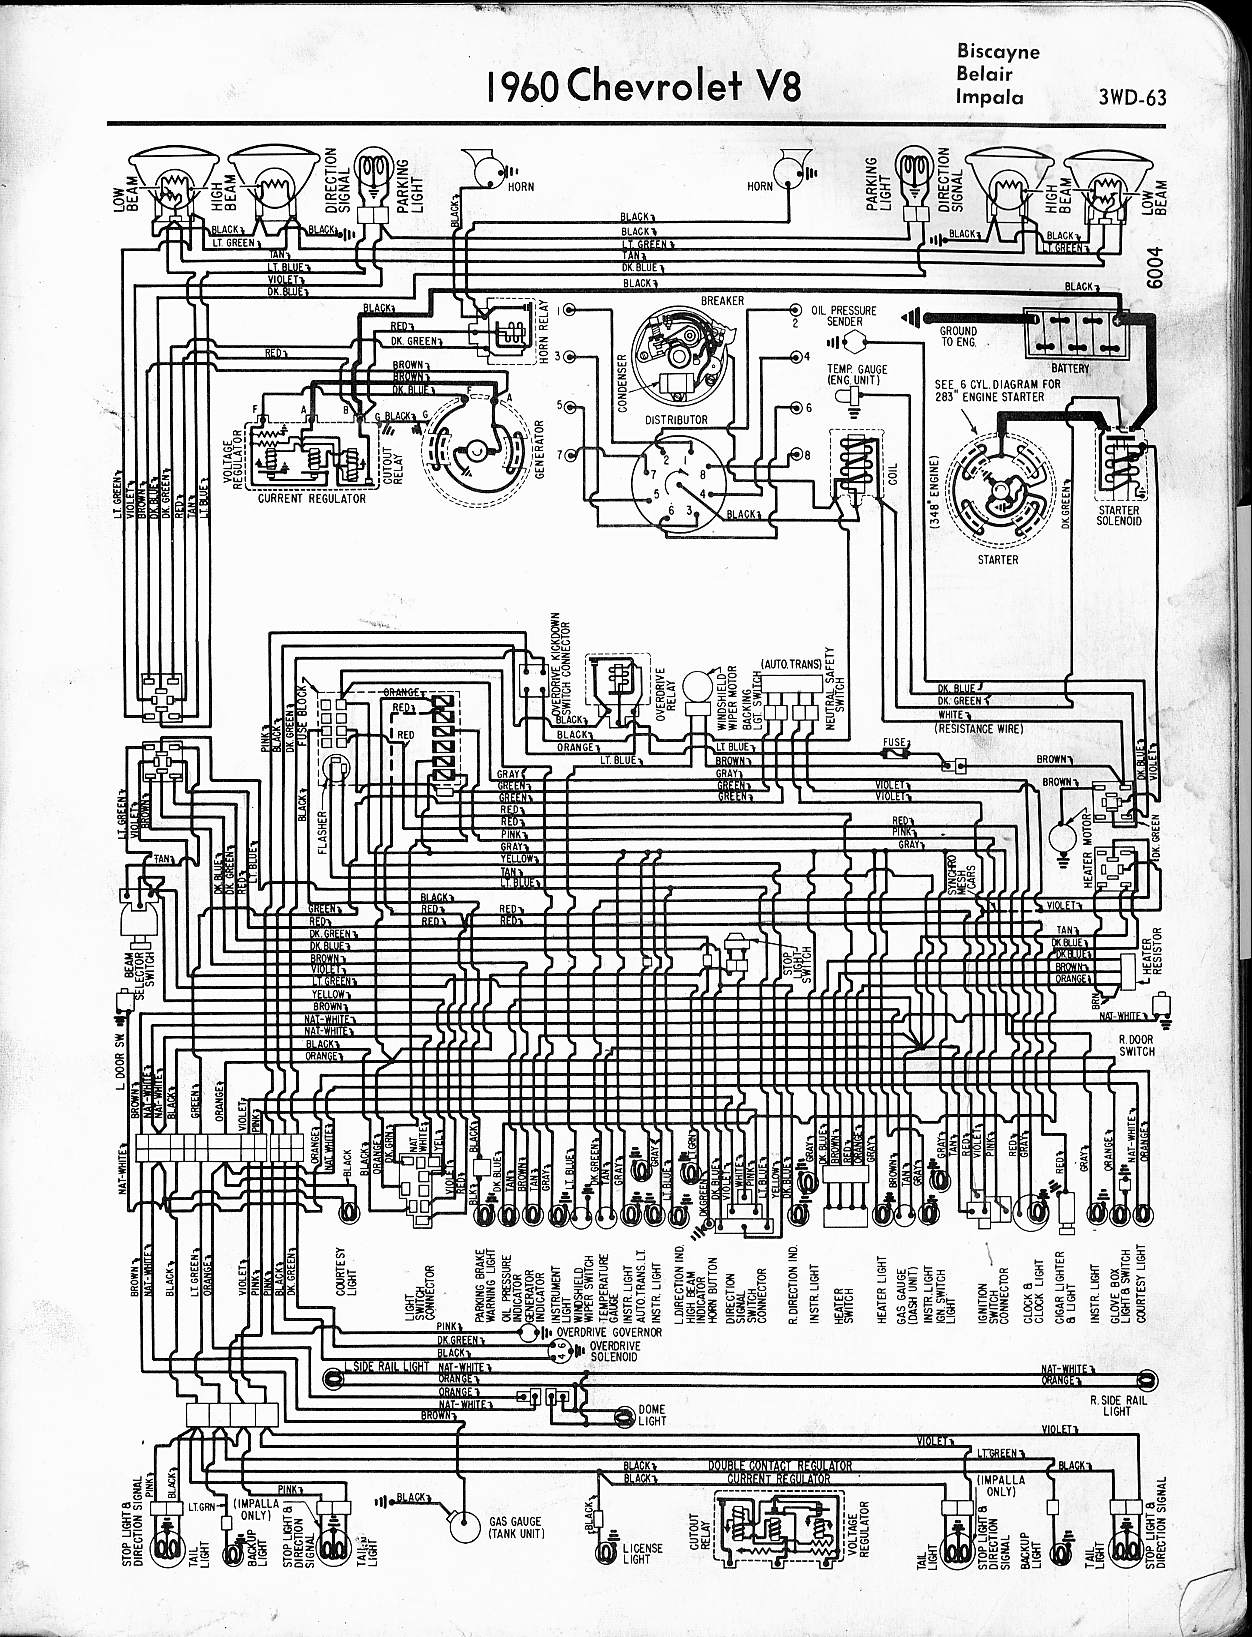 1960 Biscayne Wiring Diagram Wiring Diagram Yer